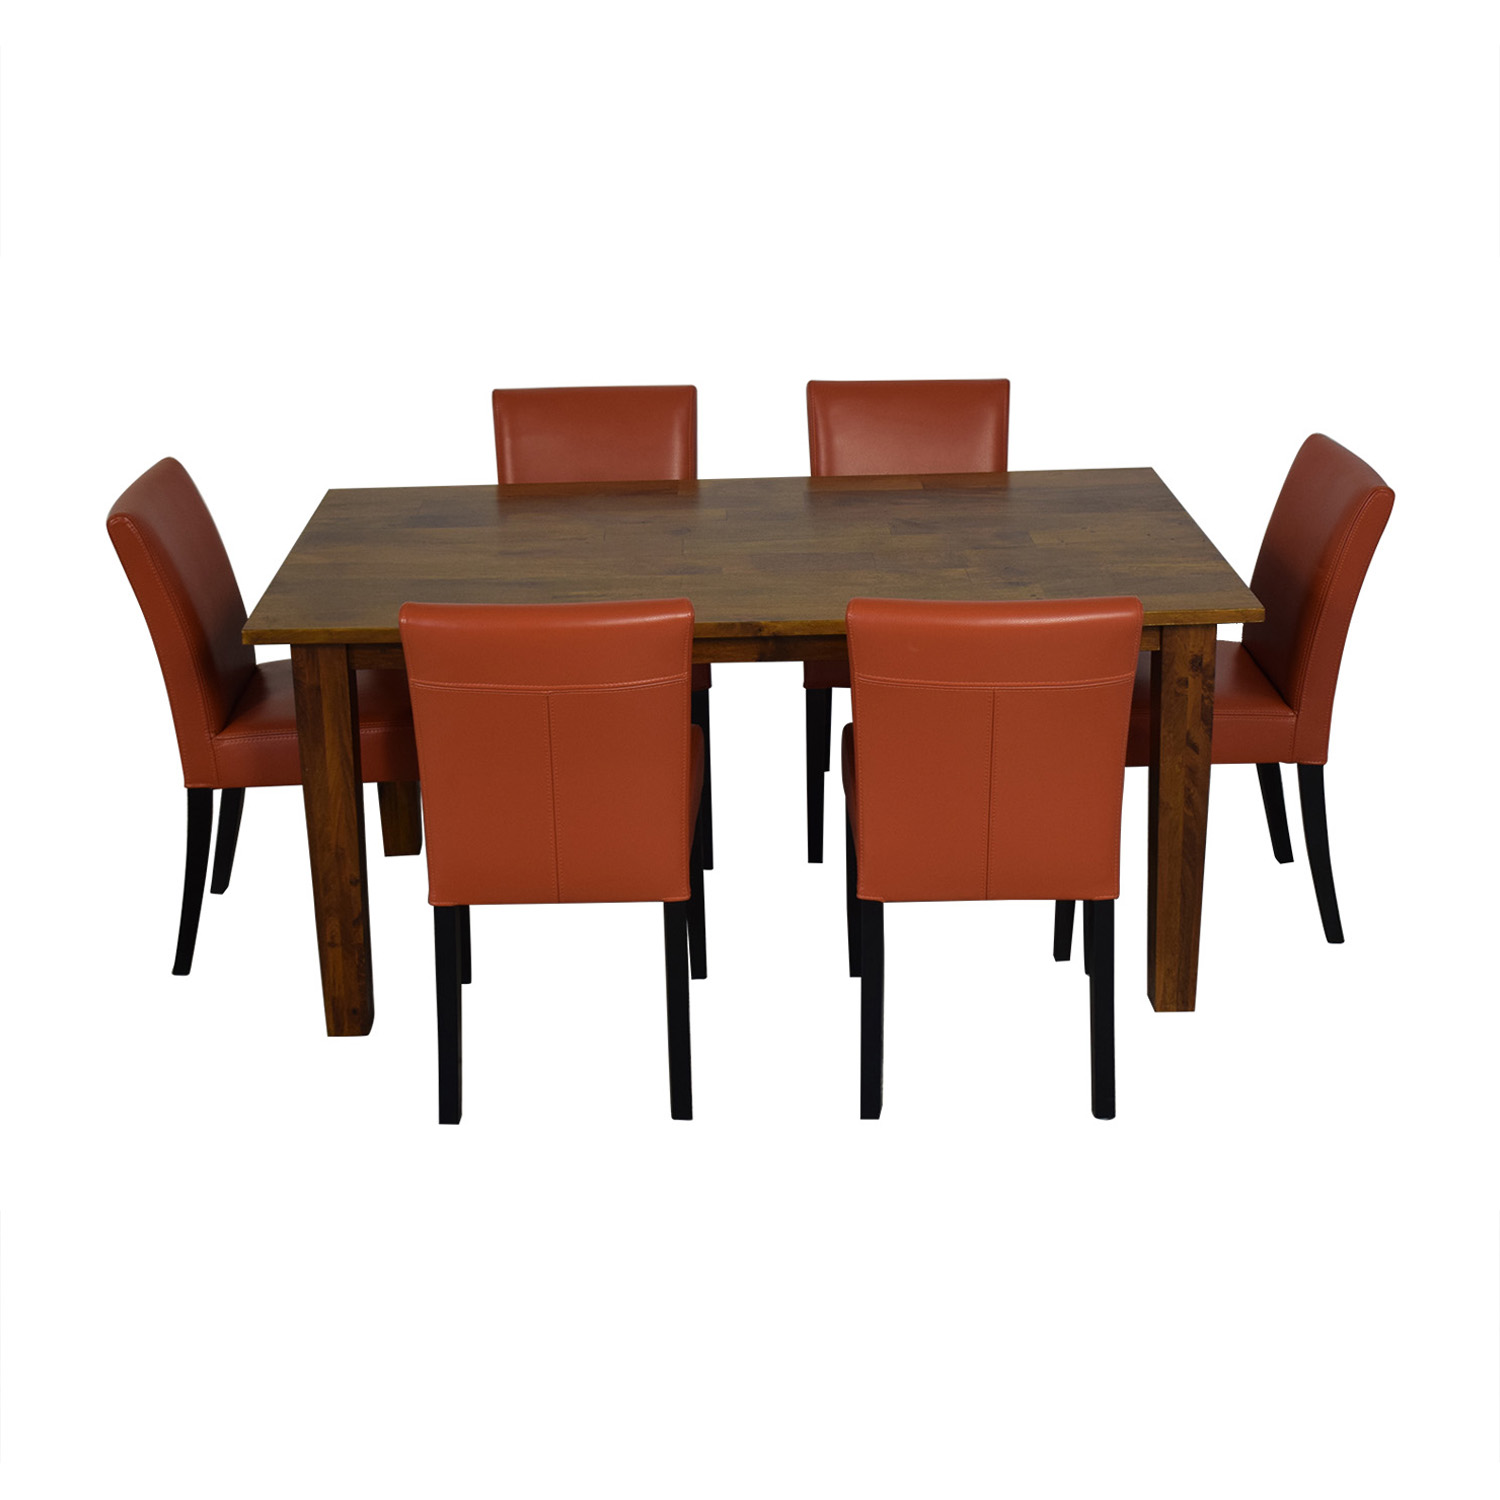 buy Crate & Barrel Crate & Barrel Basque Honey Dining Set and Lowe Persimmon Chairs online